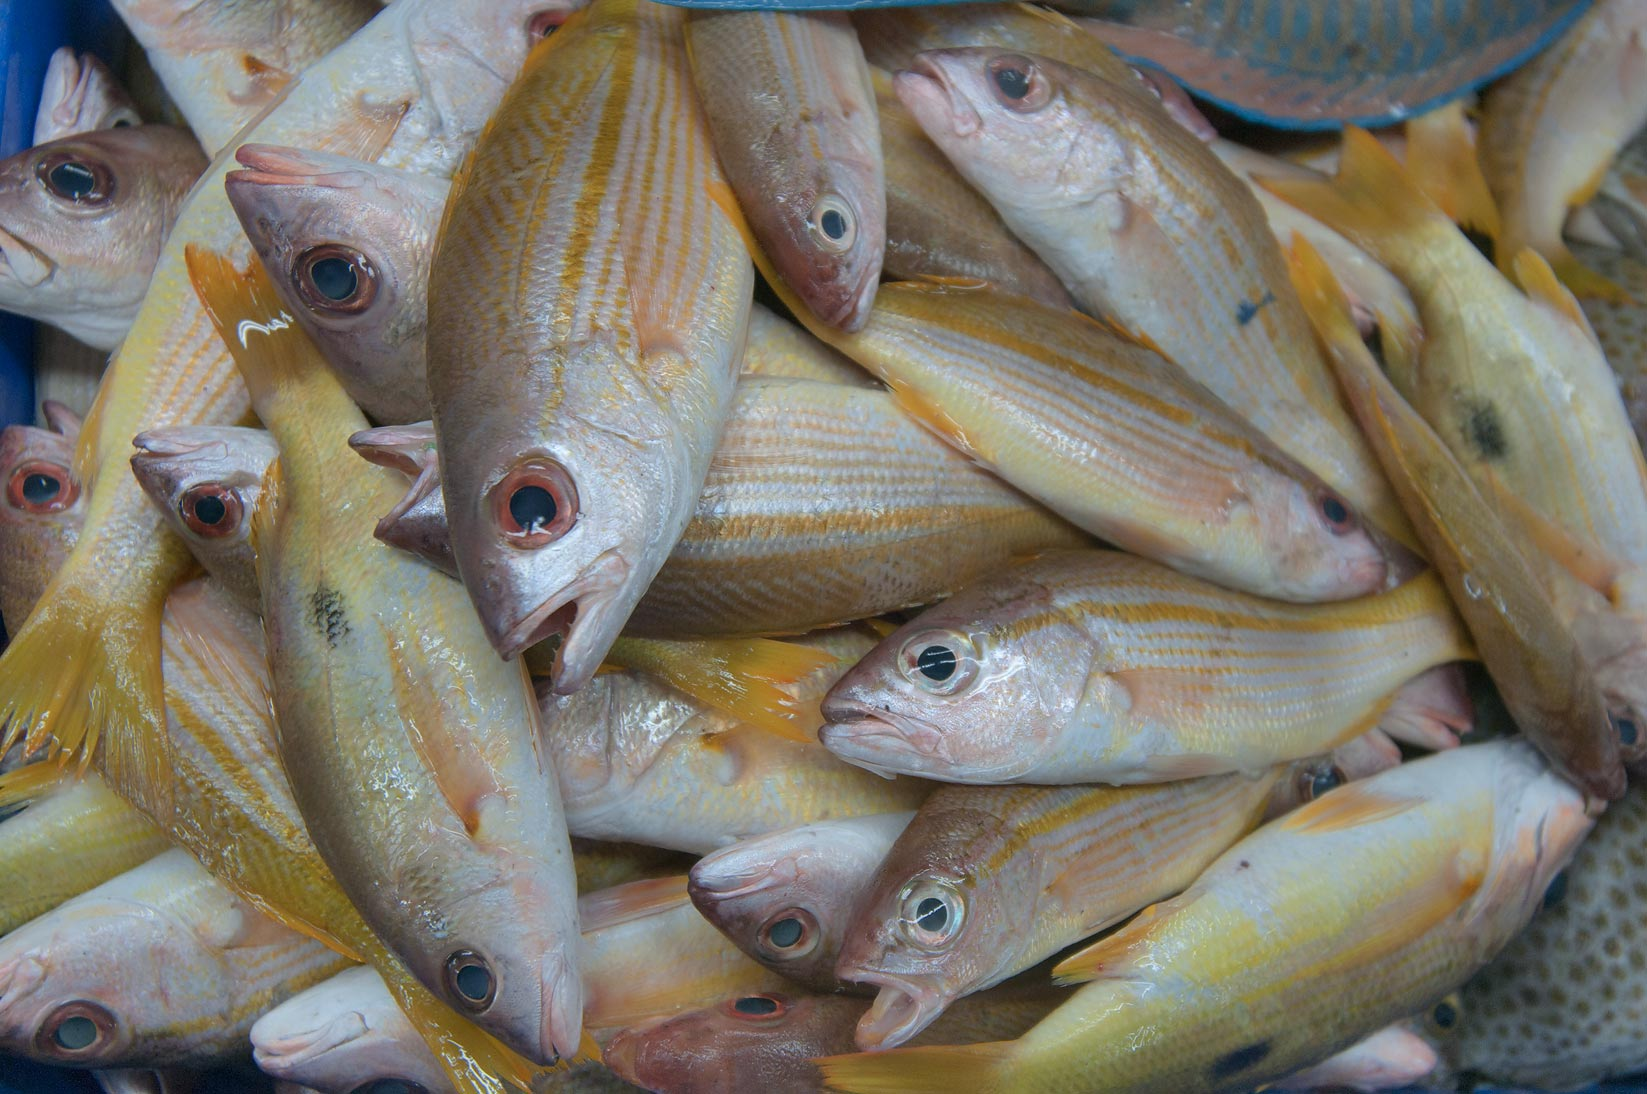 Some yellowish fish in Central Fish Market. Doha, Qatar